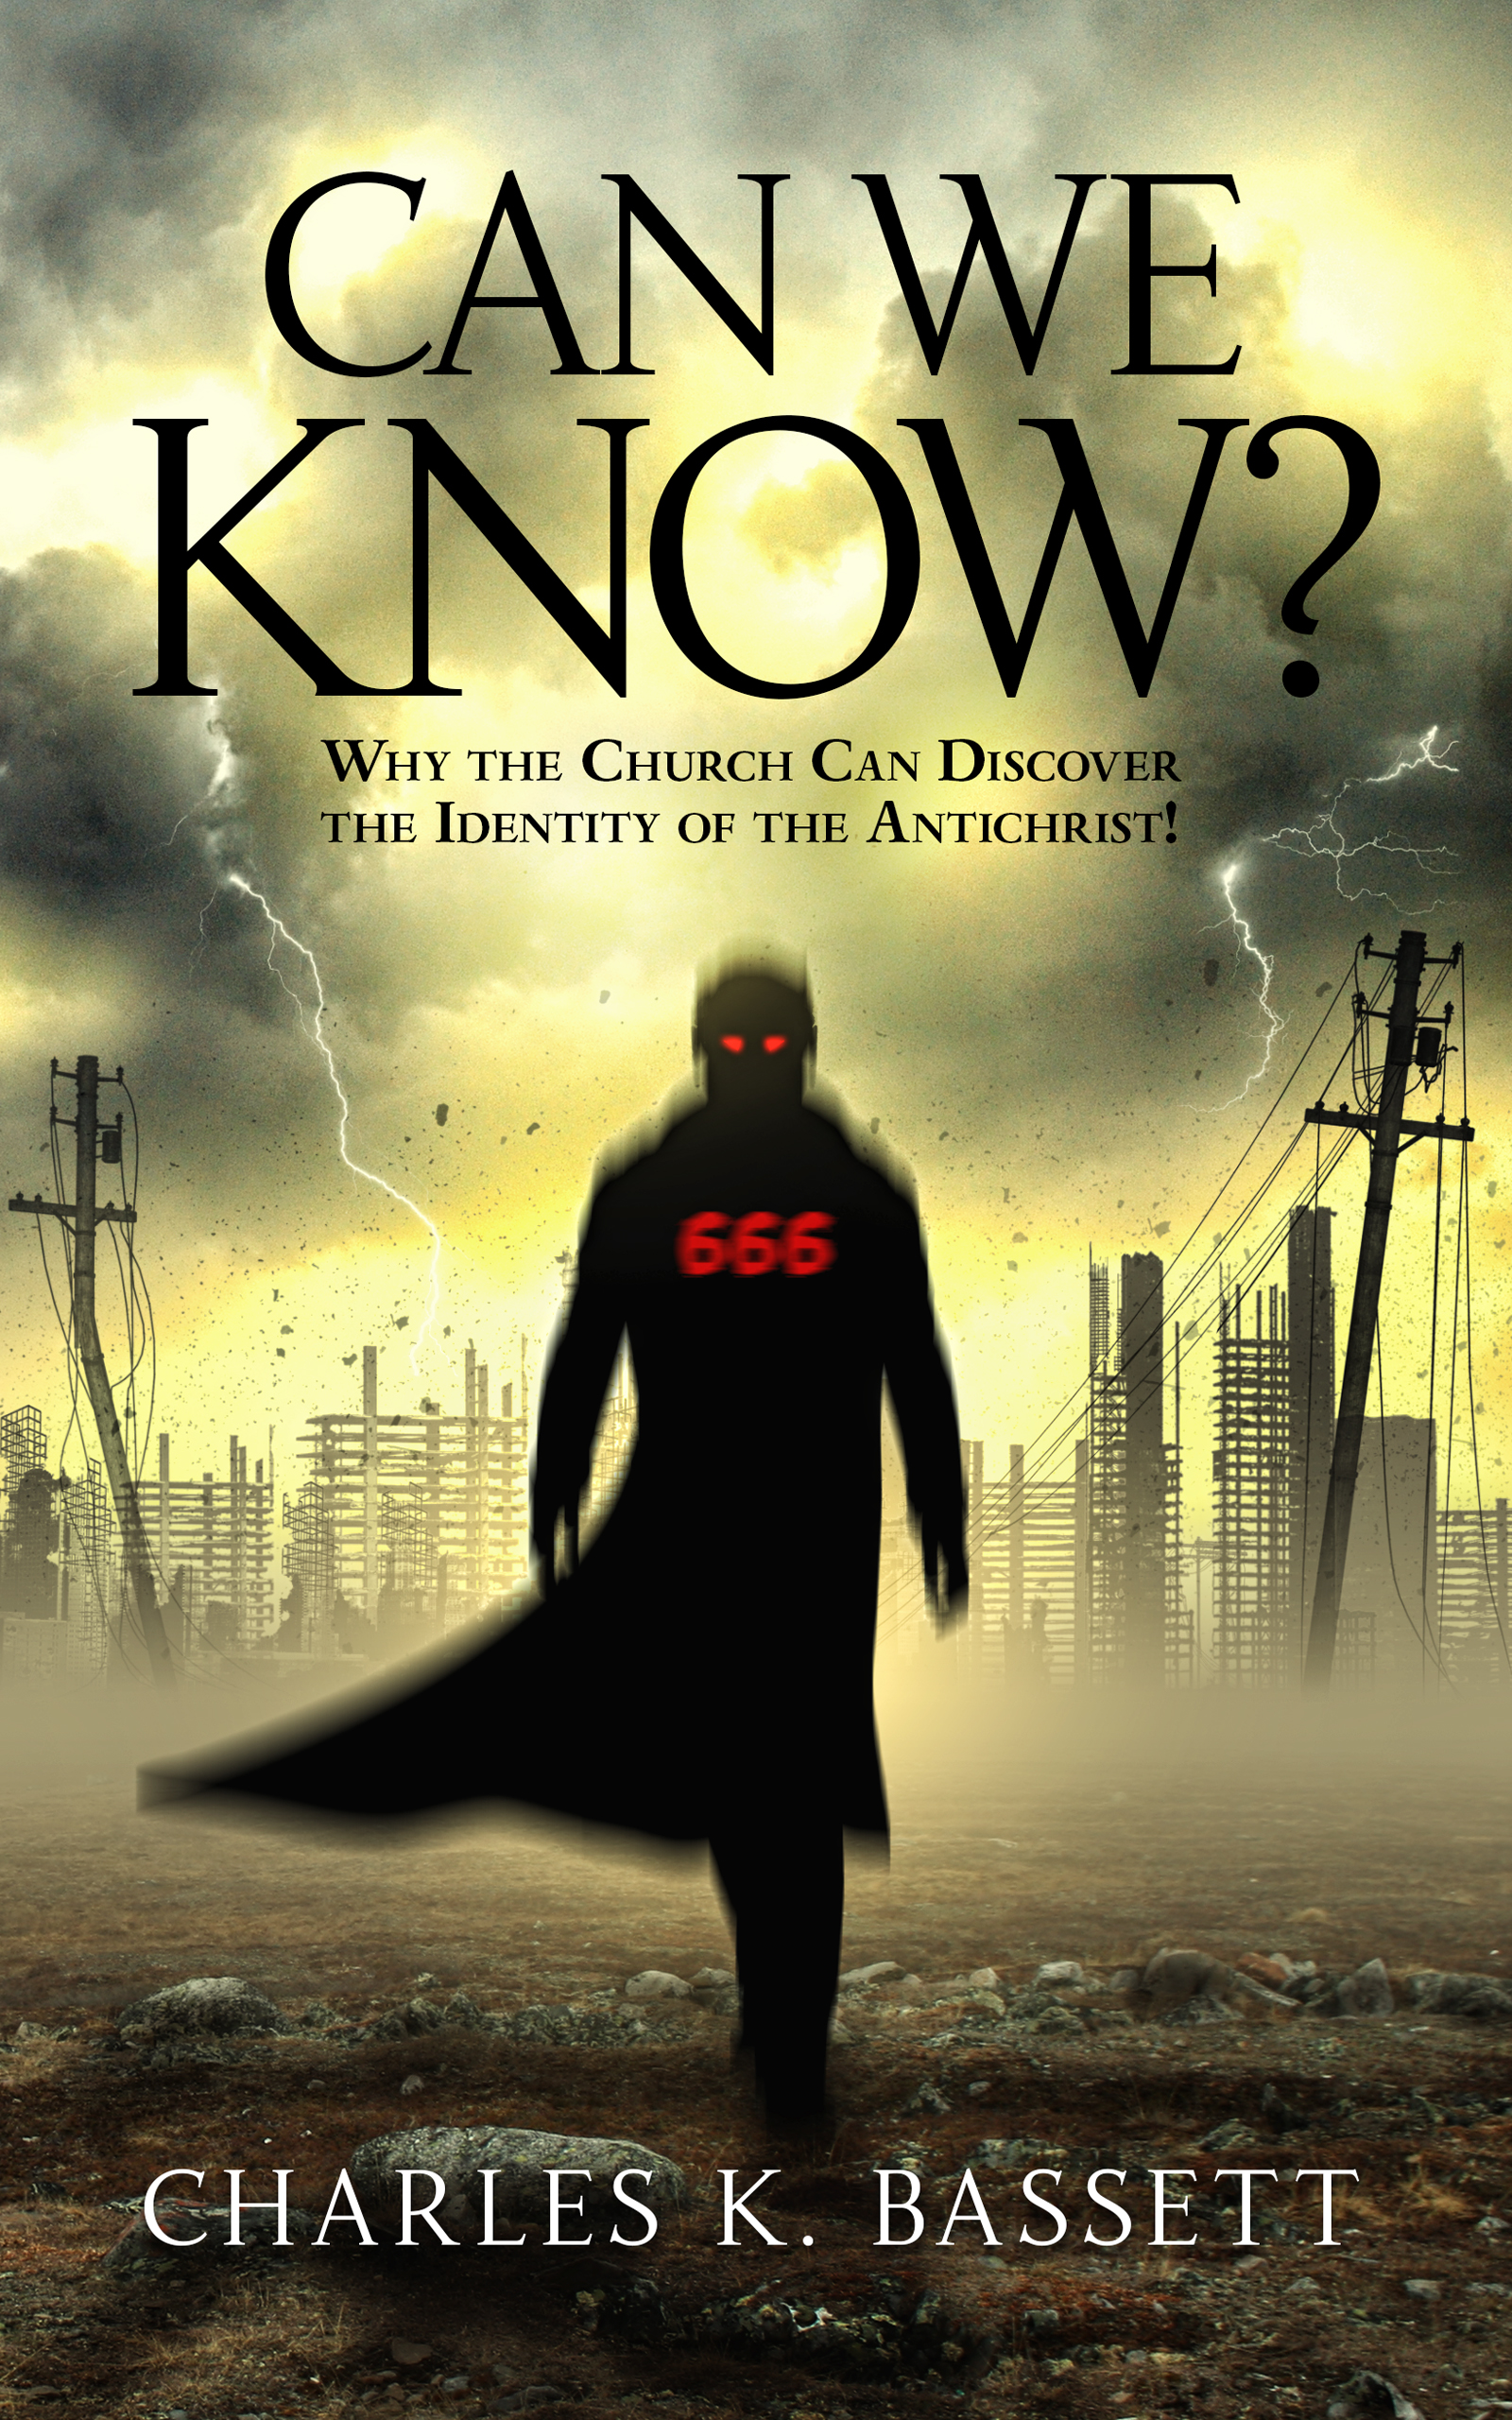 NEW COVER KINDLE - Can_We_Know_Kindle - JPG